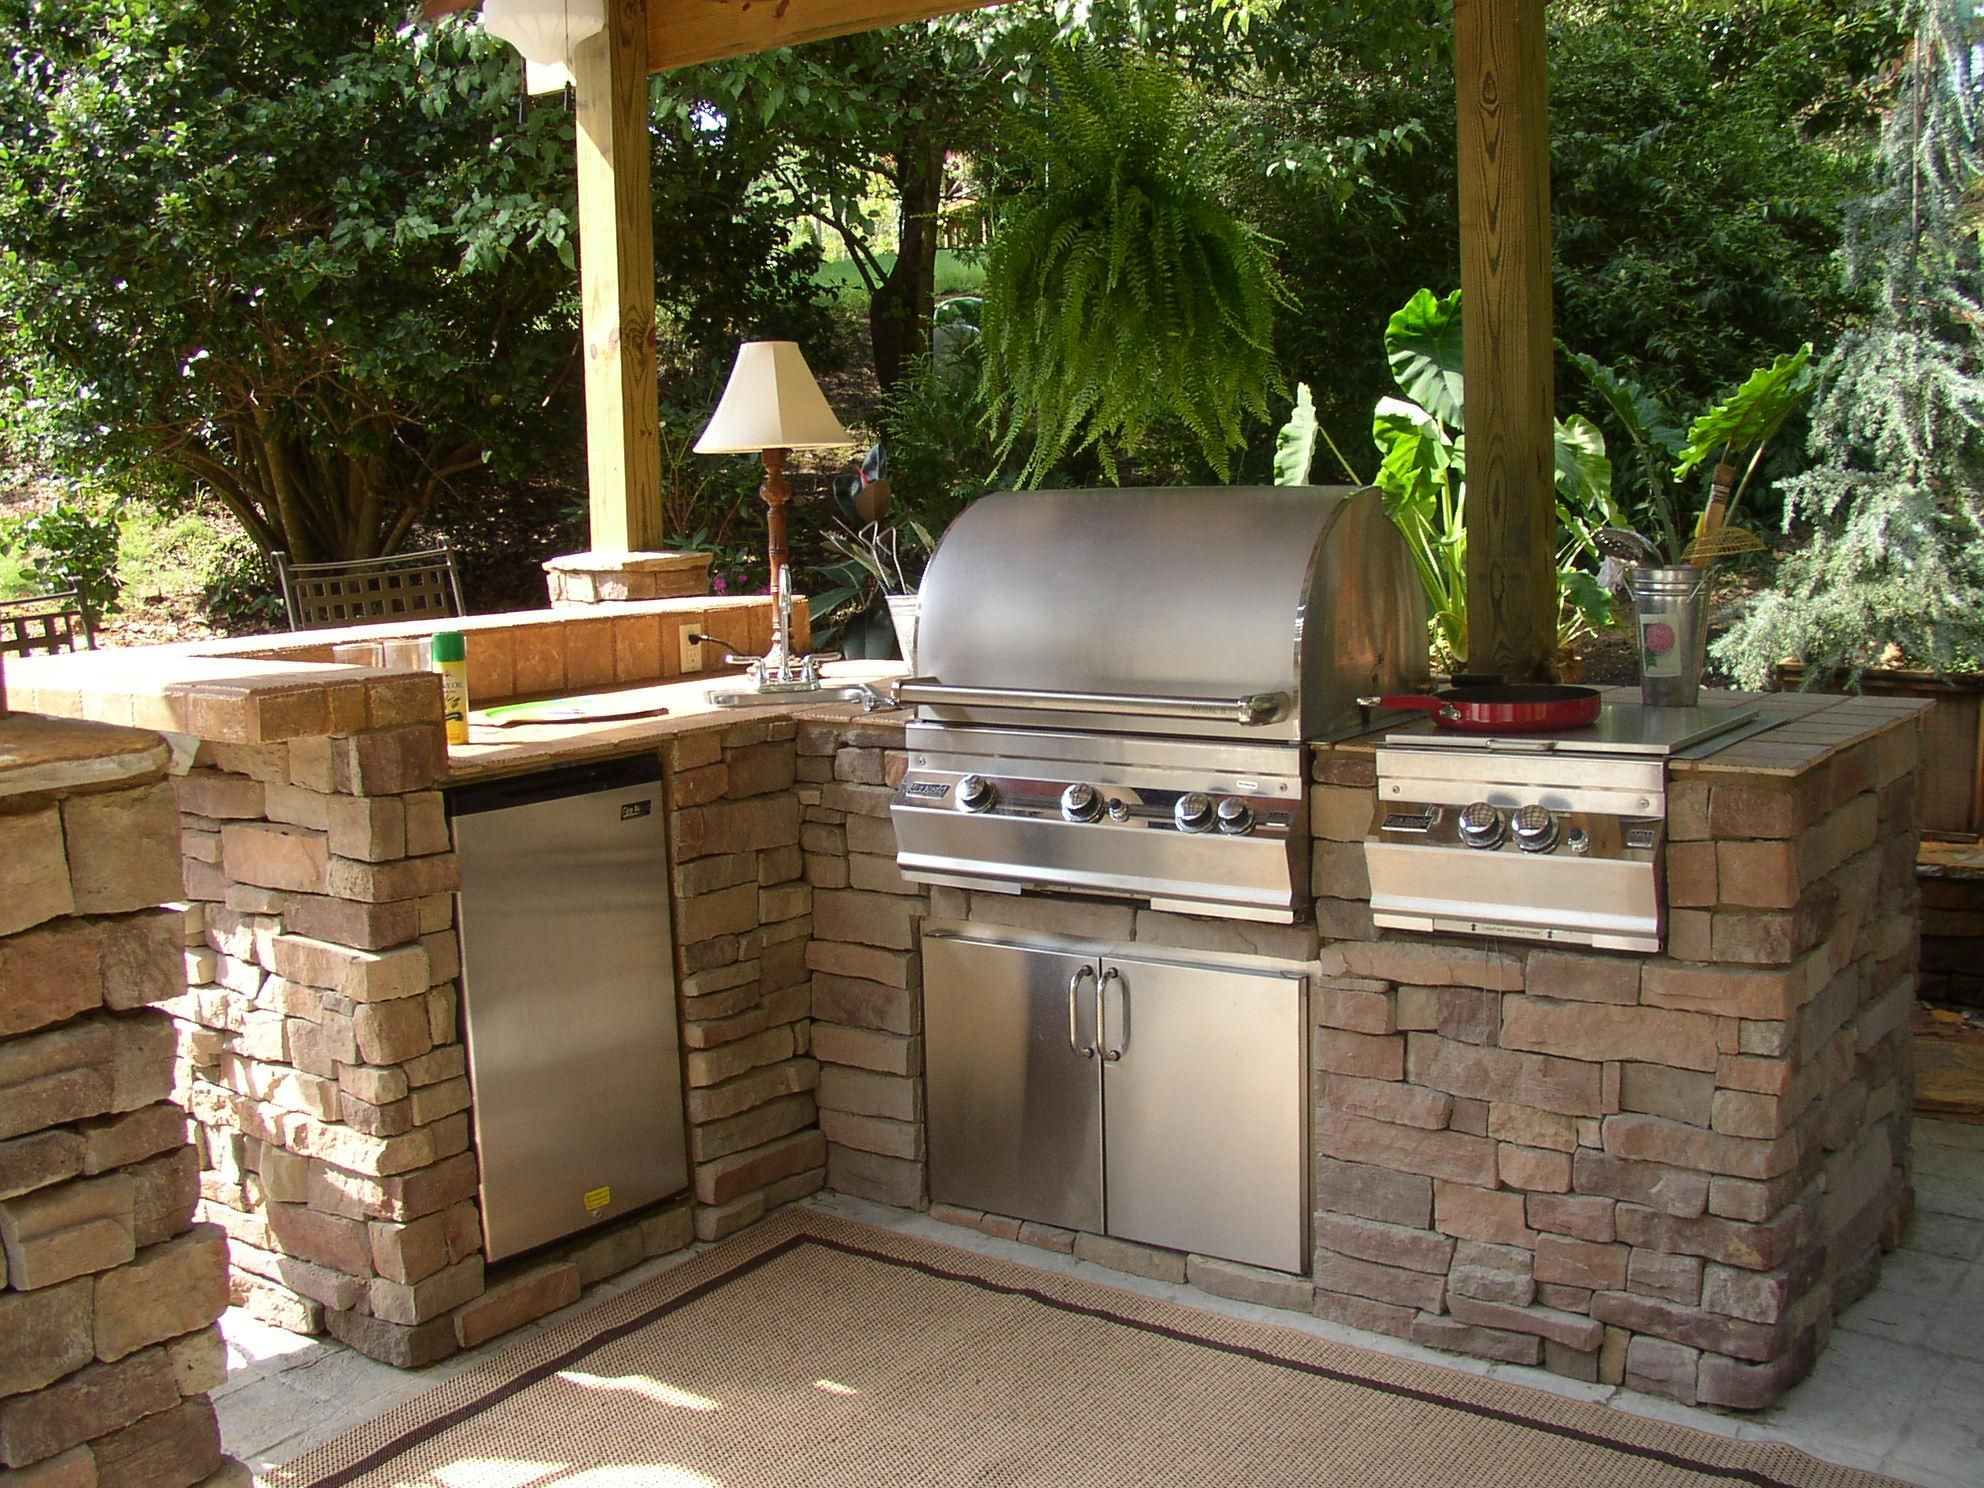 bull outdoor kitchen basic cabinets inspiring gourmet series 4 burner stainless steel